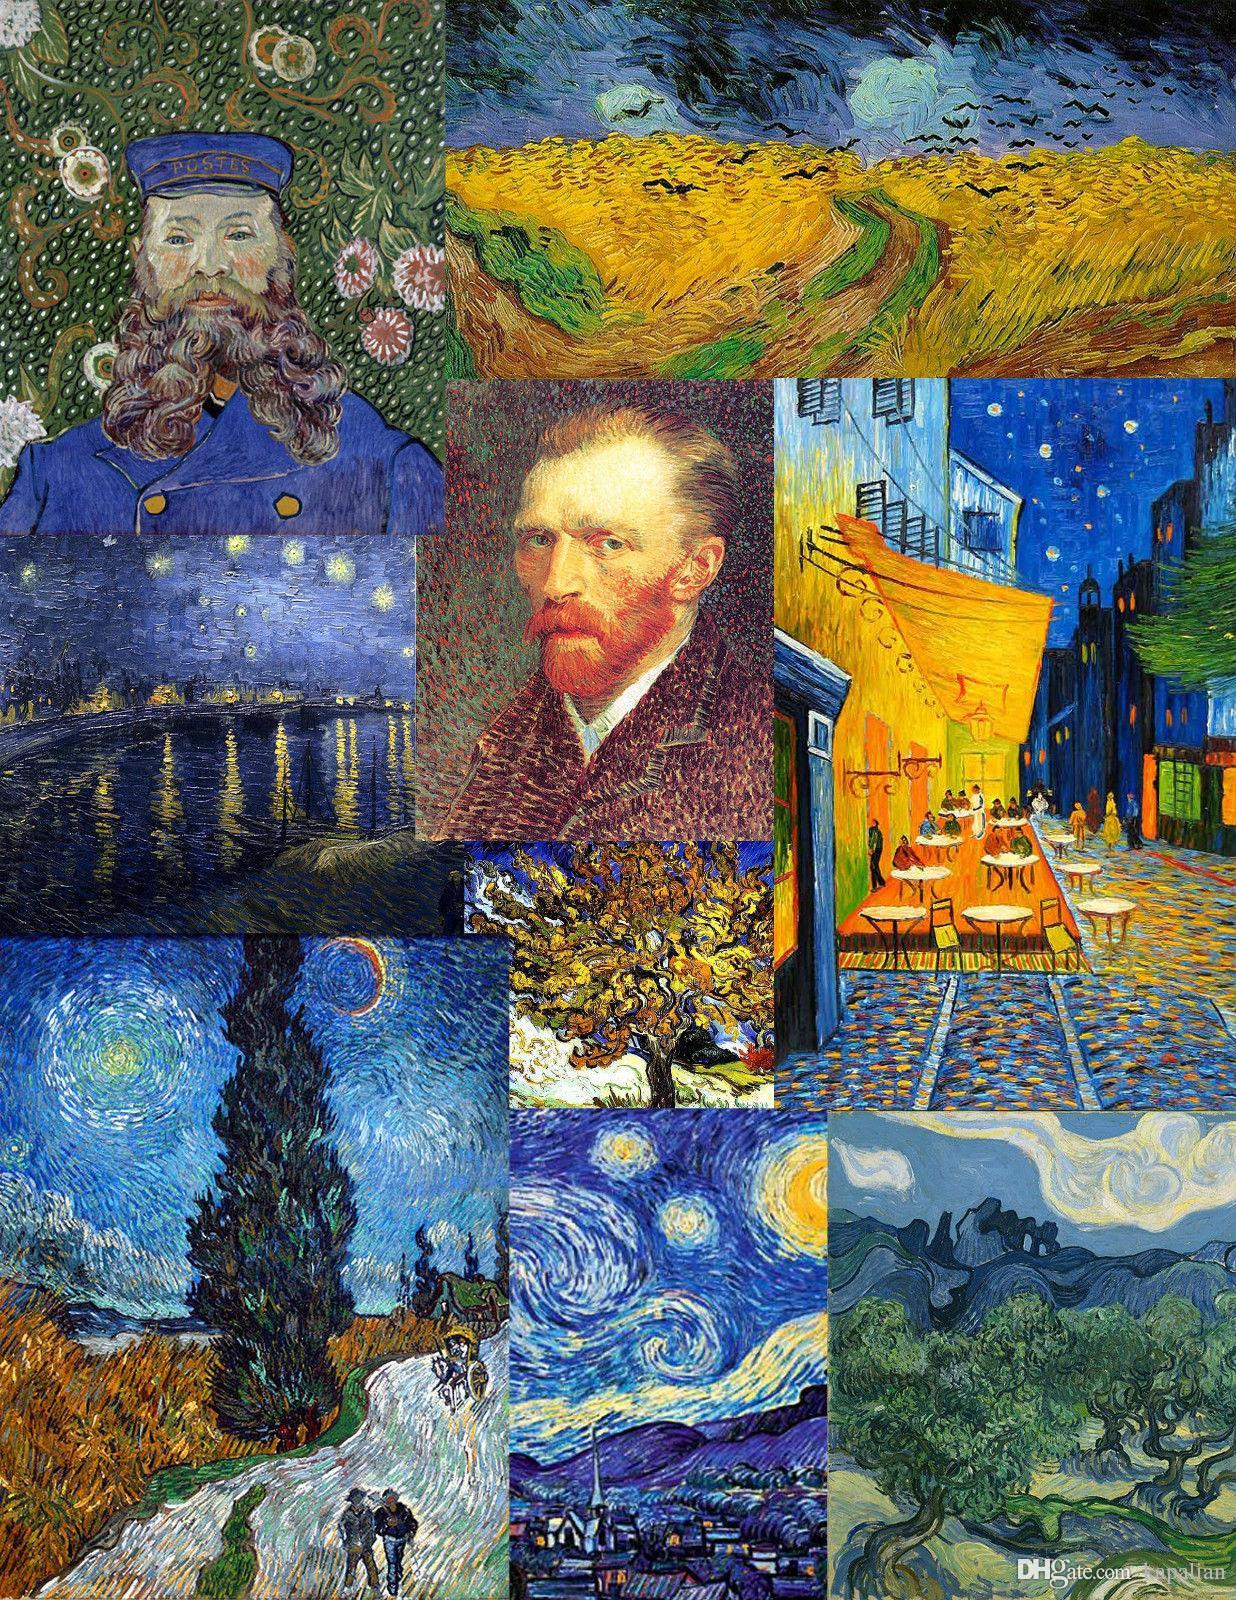 2019 Vincent Van Gogh Oil Painting High Quality Art Posters Print Wallpaper Photo Paper 16 24 36 47 Inches From Kapalian 9 64 Dhgate Com